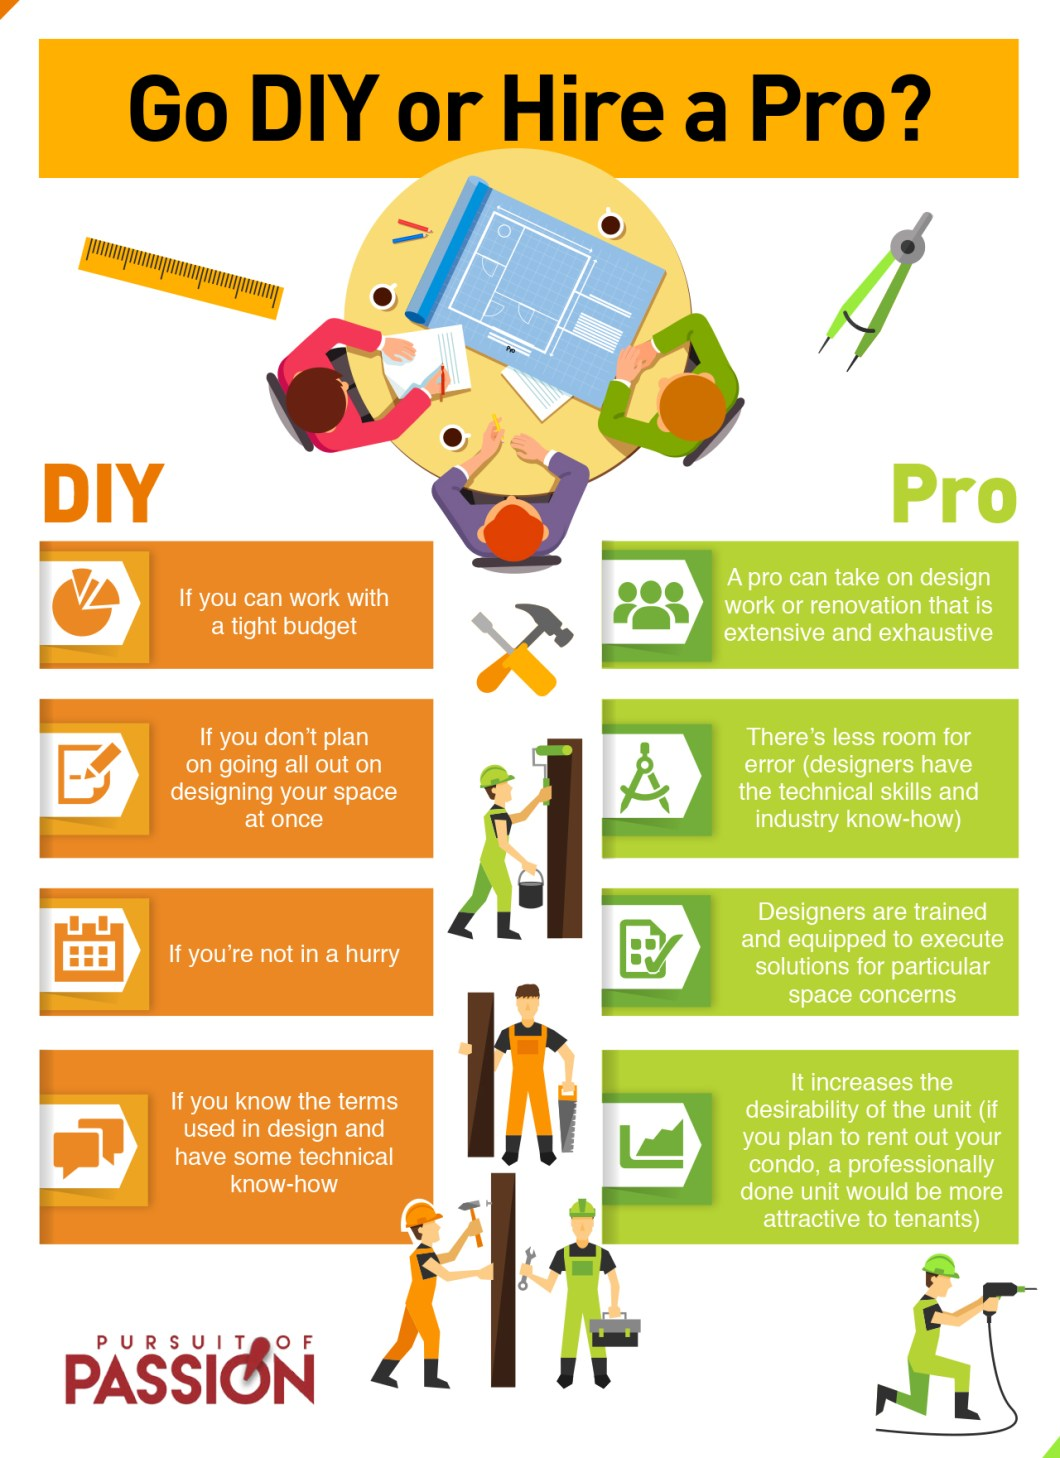 DIY or Pro for Your New Home Interiors: How Do You Choose? - Infographic